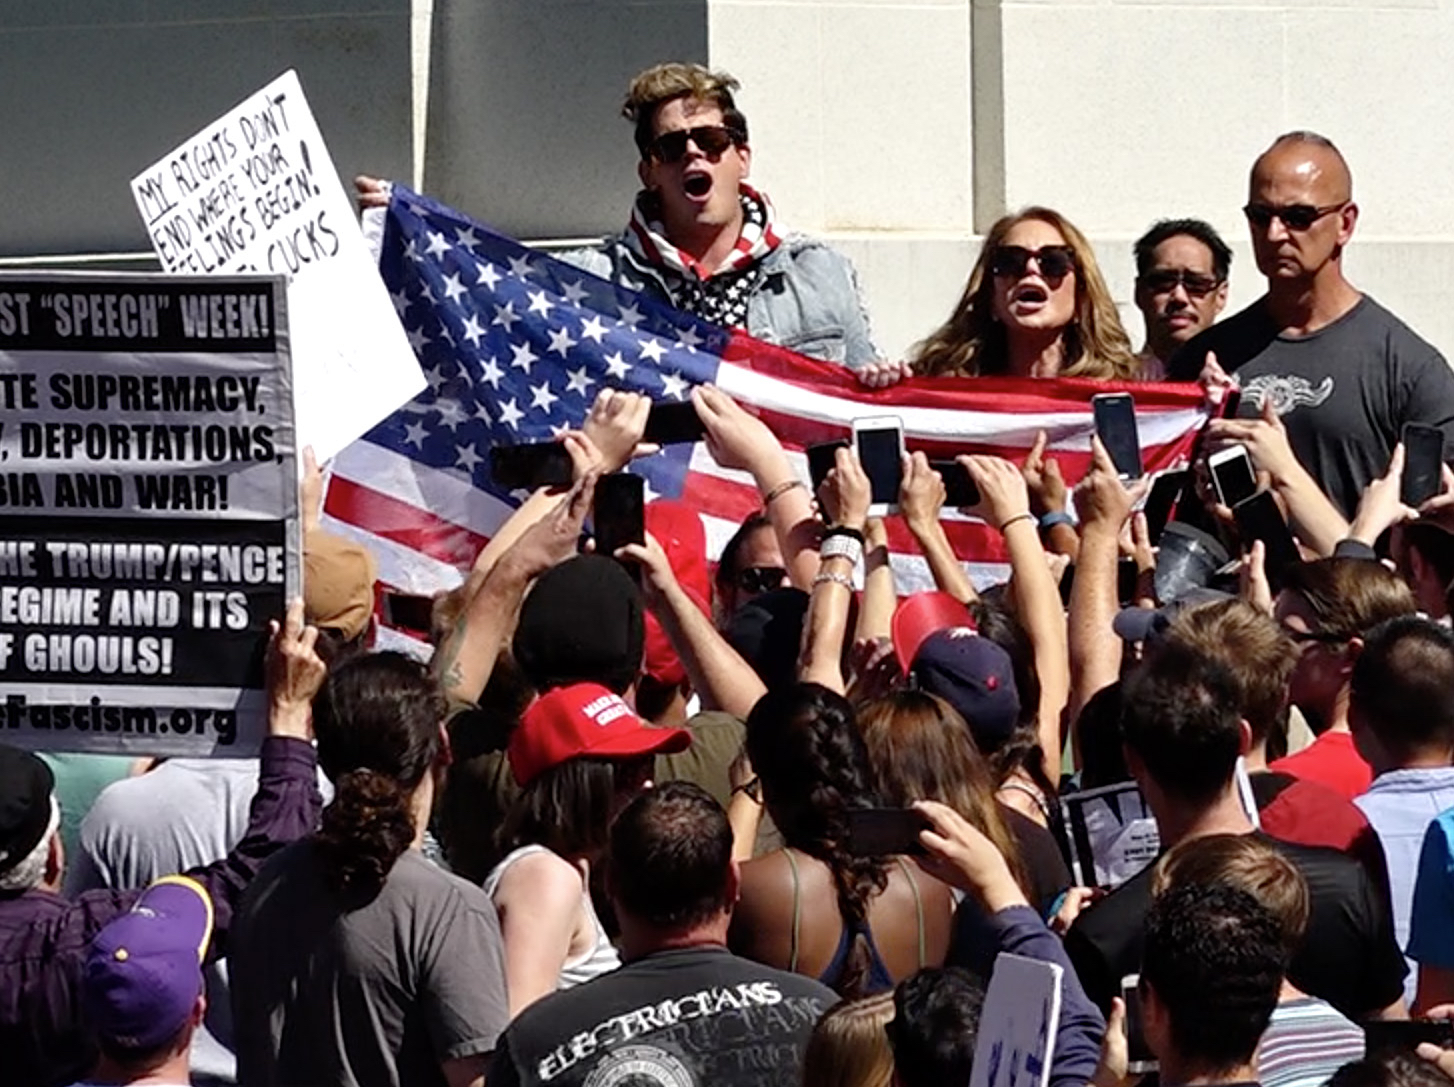 Milo Yiannopoulos appears briefly in front of a crowd in Sproul Plaza at UC Berkeley on Sunday, Sept. 24, 2017. (Nhat V. Meyer/Bay Area News Group)